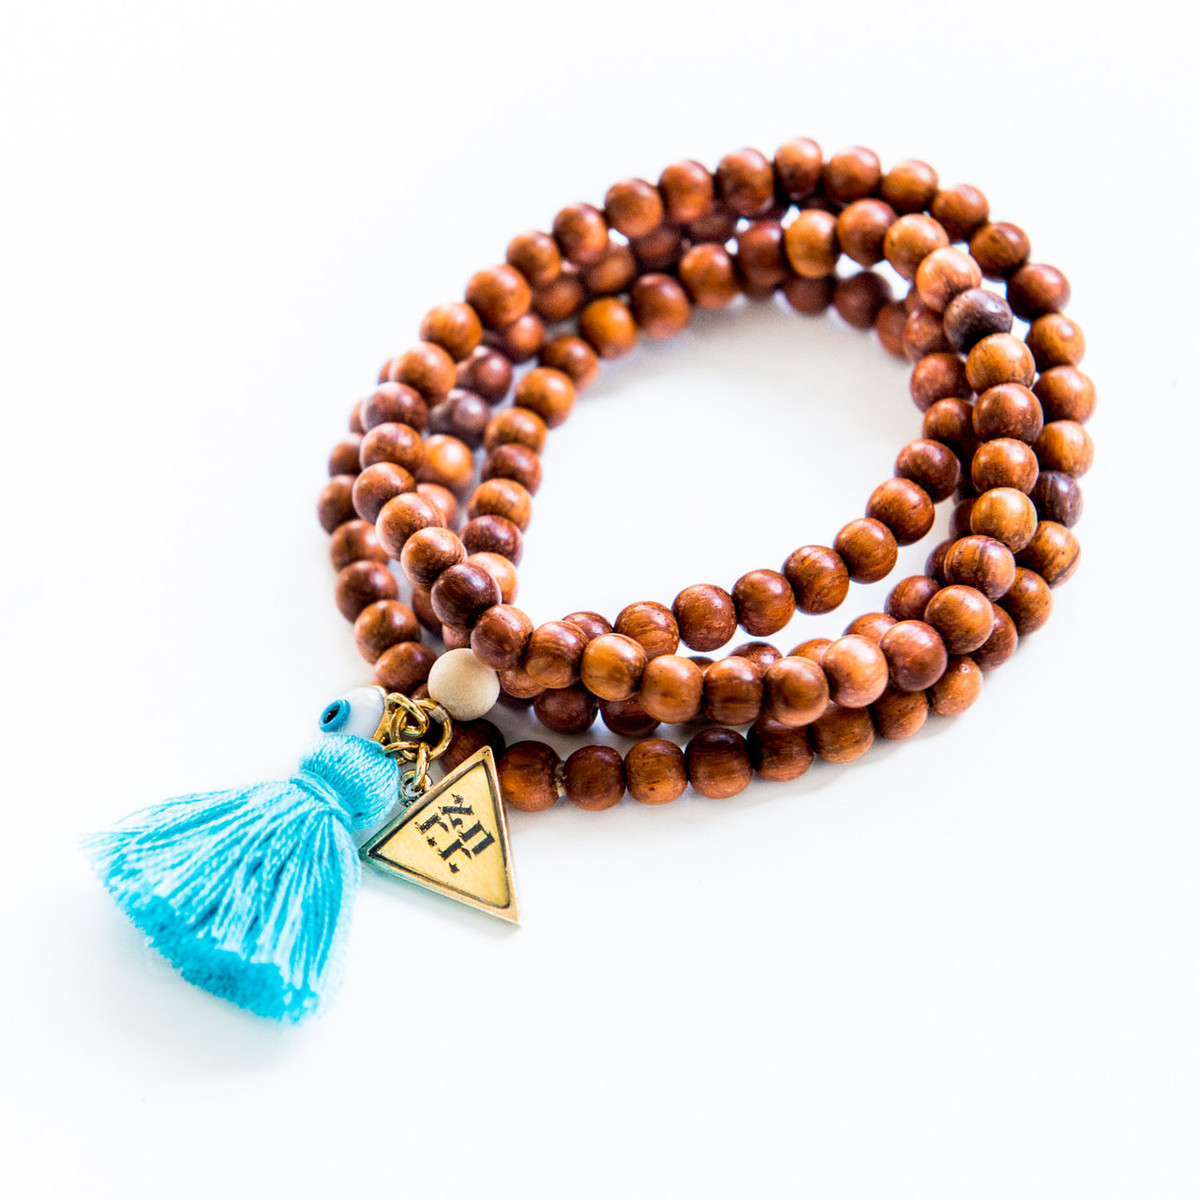 7Stitches Kabbalah Bracelet/Necklace in Bayong Wood Blue Tassel